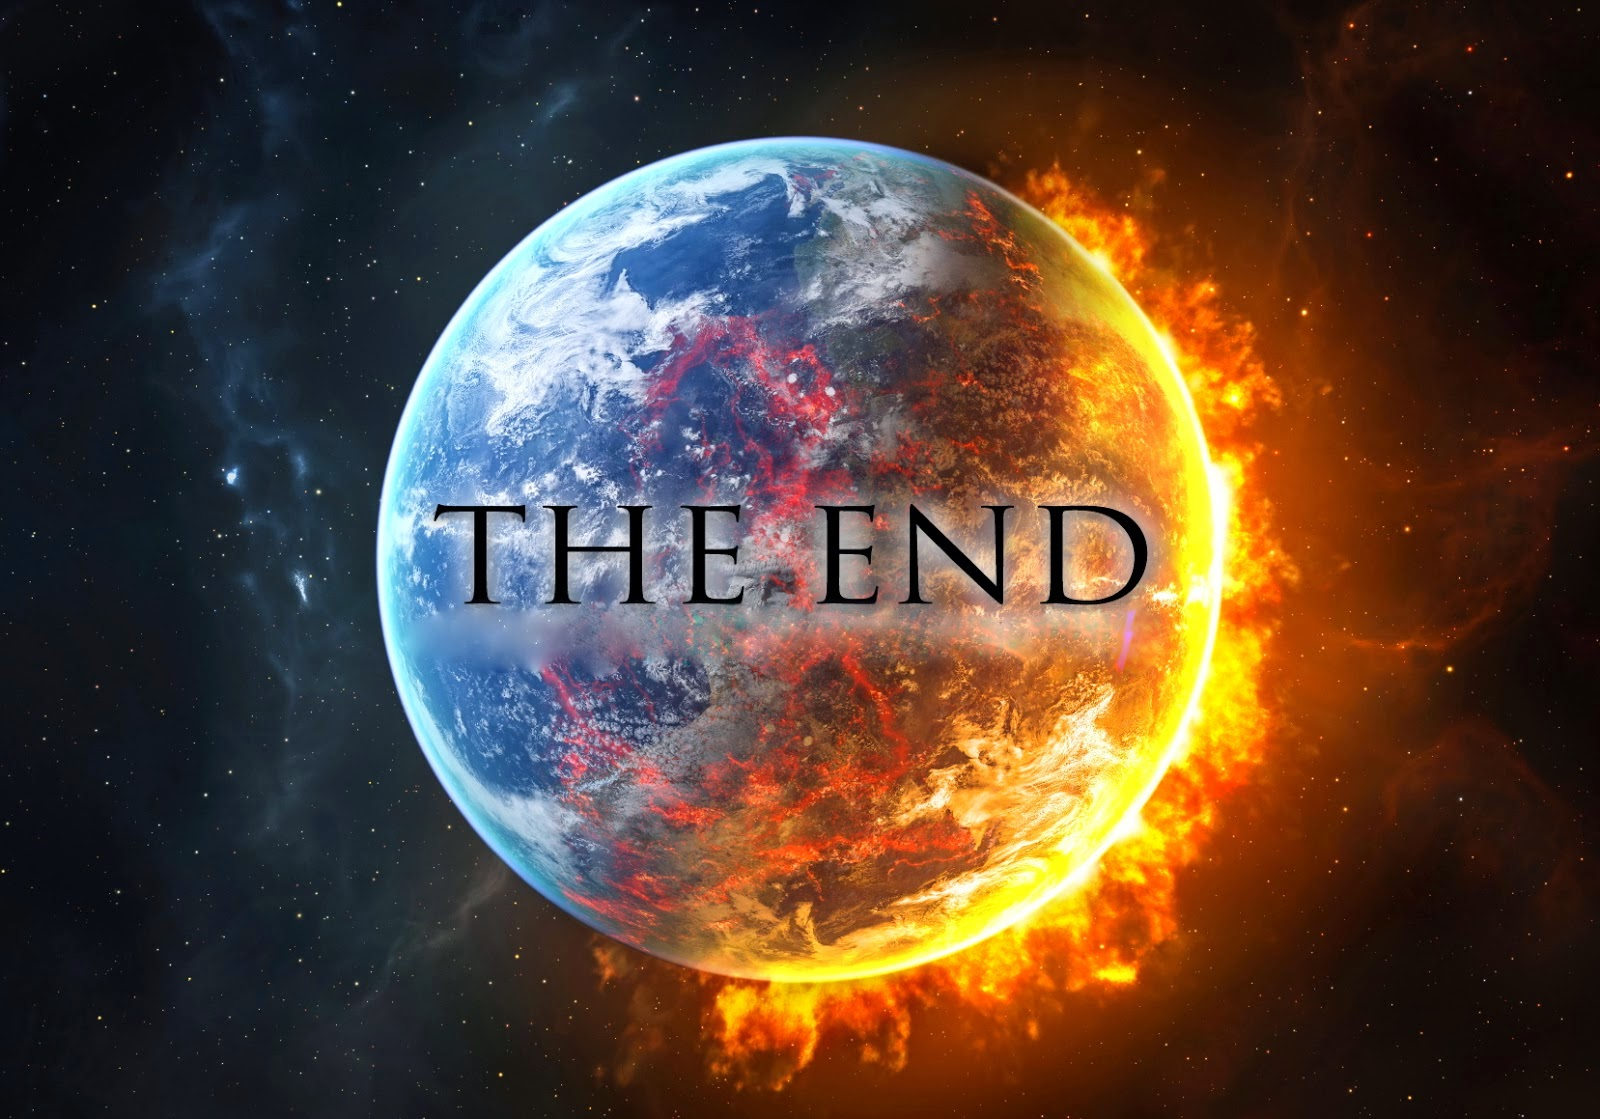 The end of The world on 16 march 2880 - www.gossipsinhalanews.com